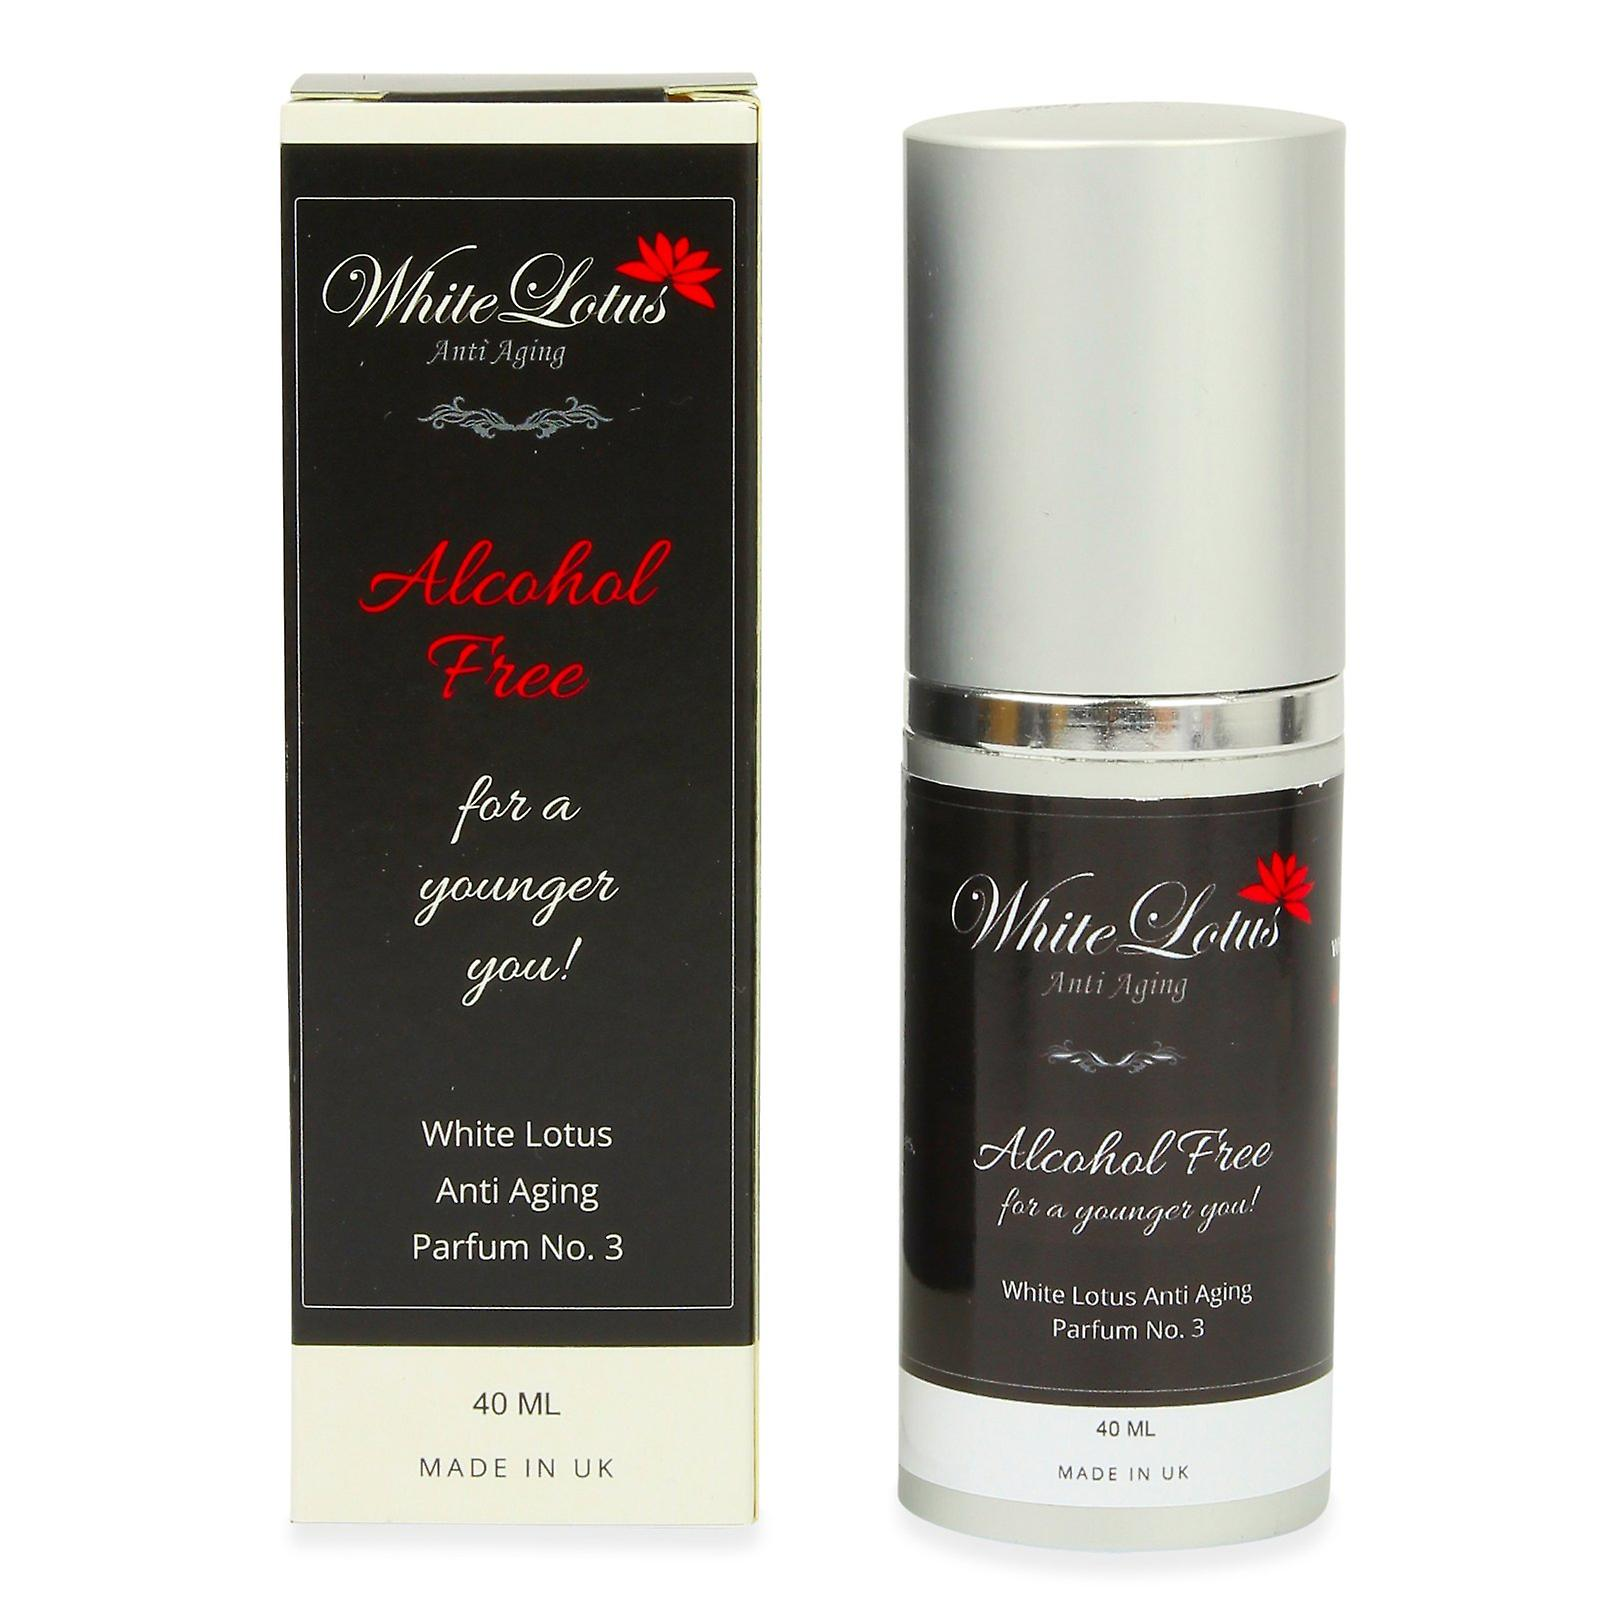 Hypoallergenic alcohol free anti aging perfume - no.3